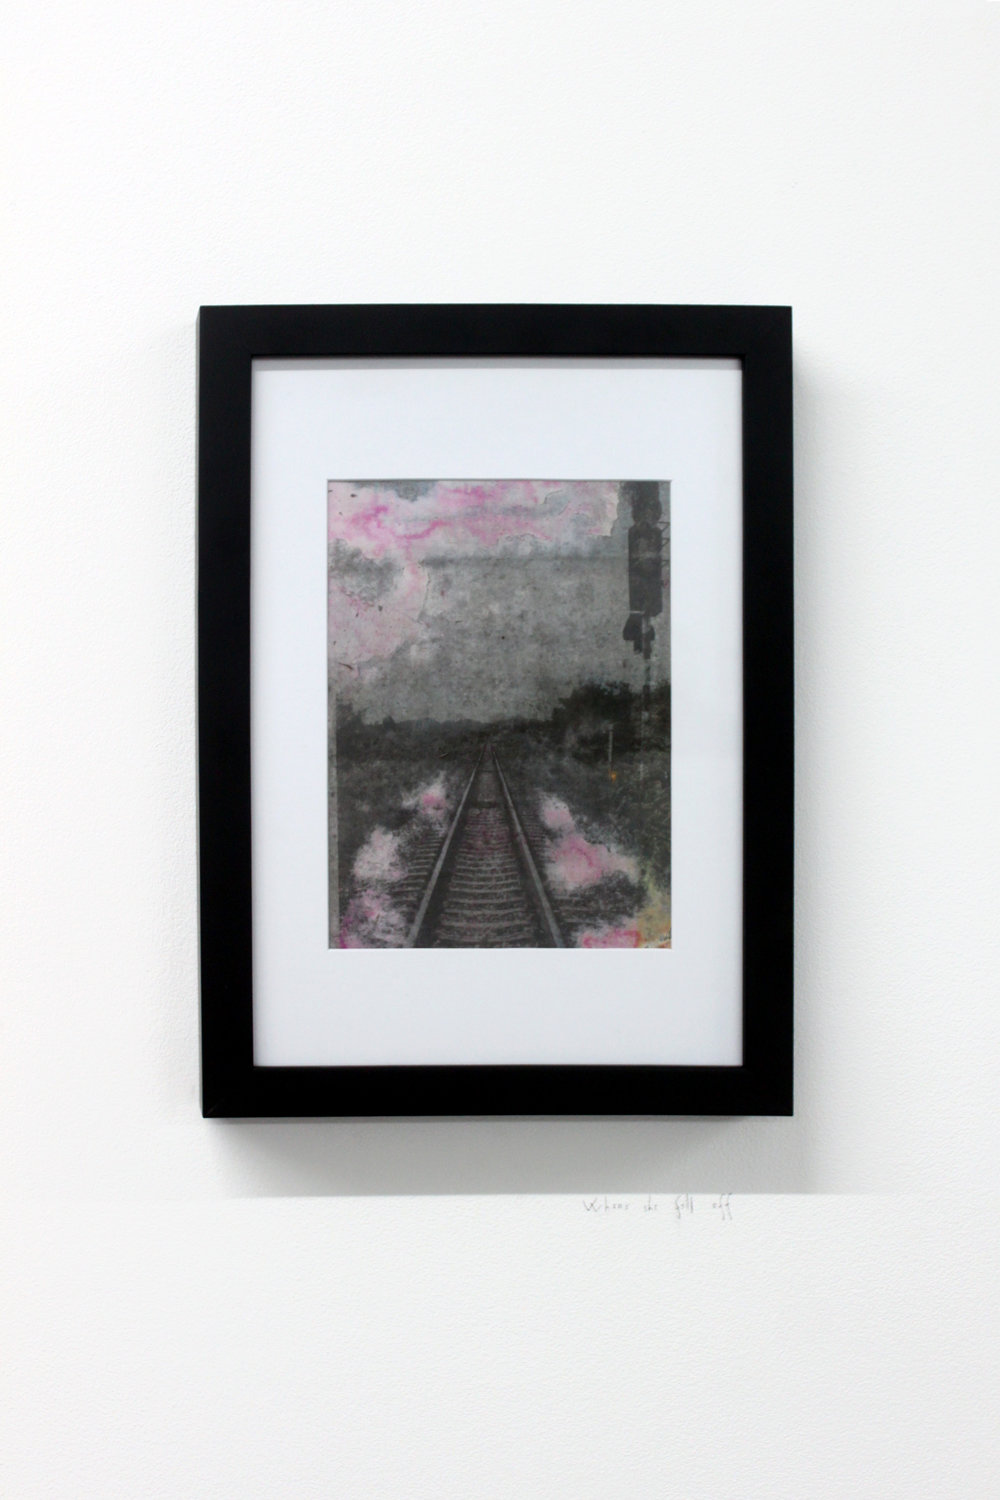 Edouard Burgeat,  Train rails acid fragments, When she fell off,  Analog photo-transfer on steel plate, 21x15cm